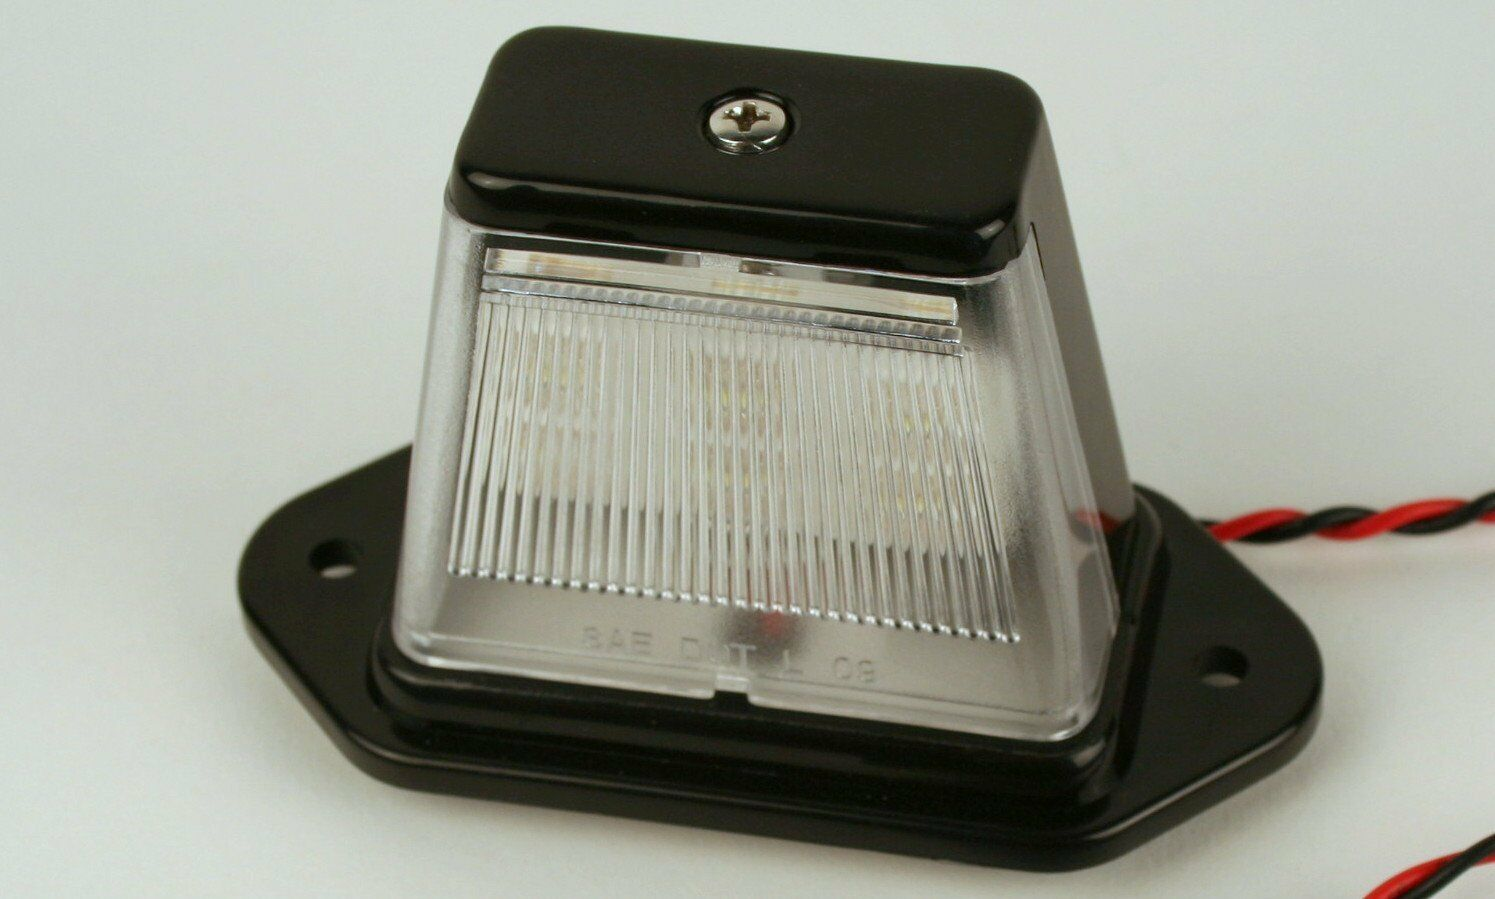 Truck RV ATV Snowmobile Trailer LED License Plate Light - Black Finish